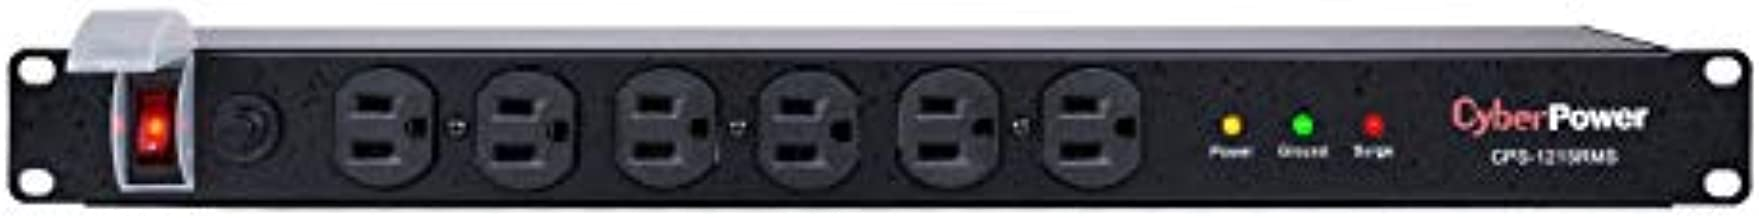 CyberPower CPS1215RMS Surge Protector, 120V/15A, 12 Outlets, 15ft Power Cord, 1U Rackmount